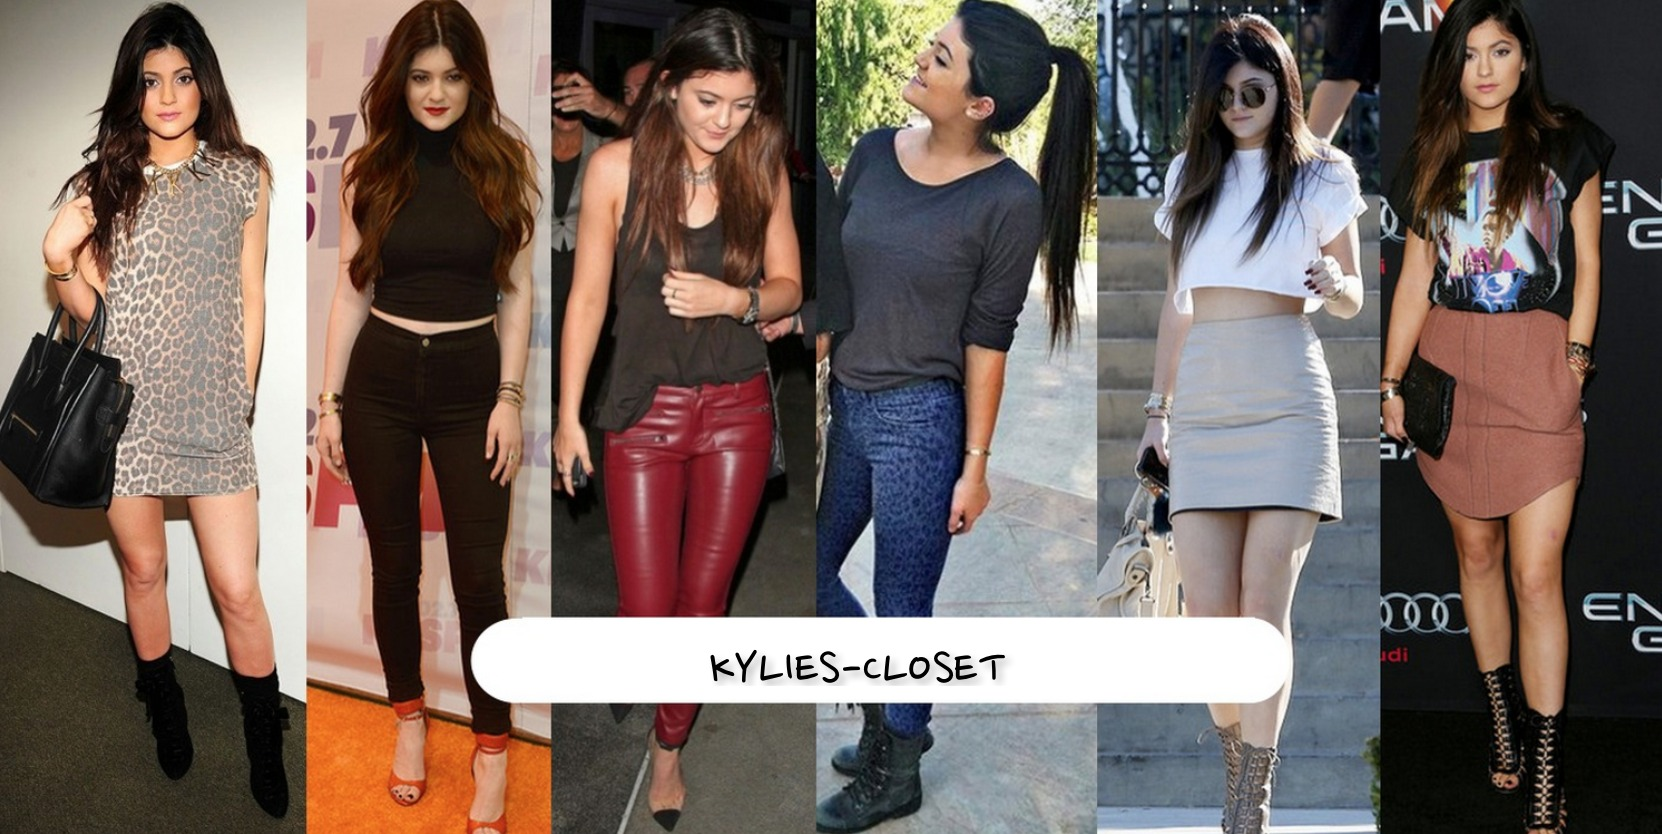 Image Gallery Kylie Jenner Outfits Tumblr